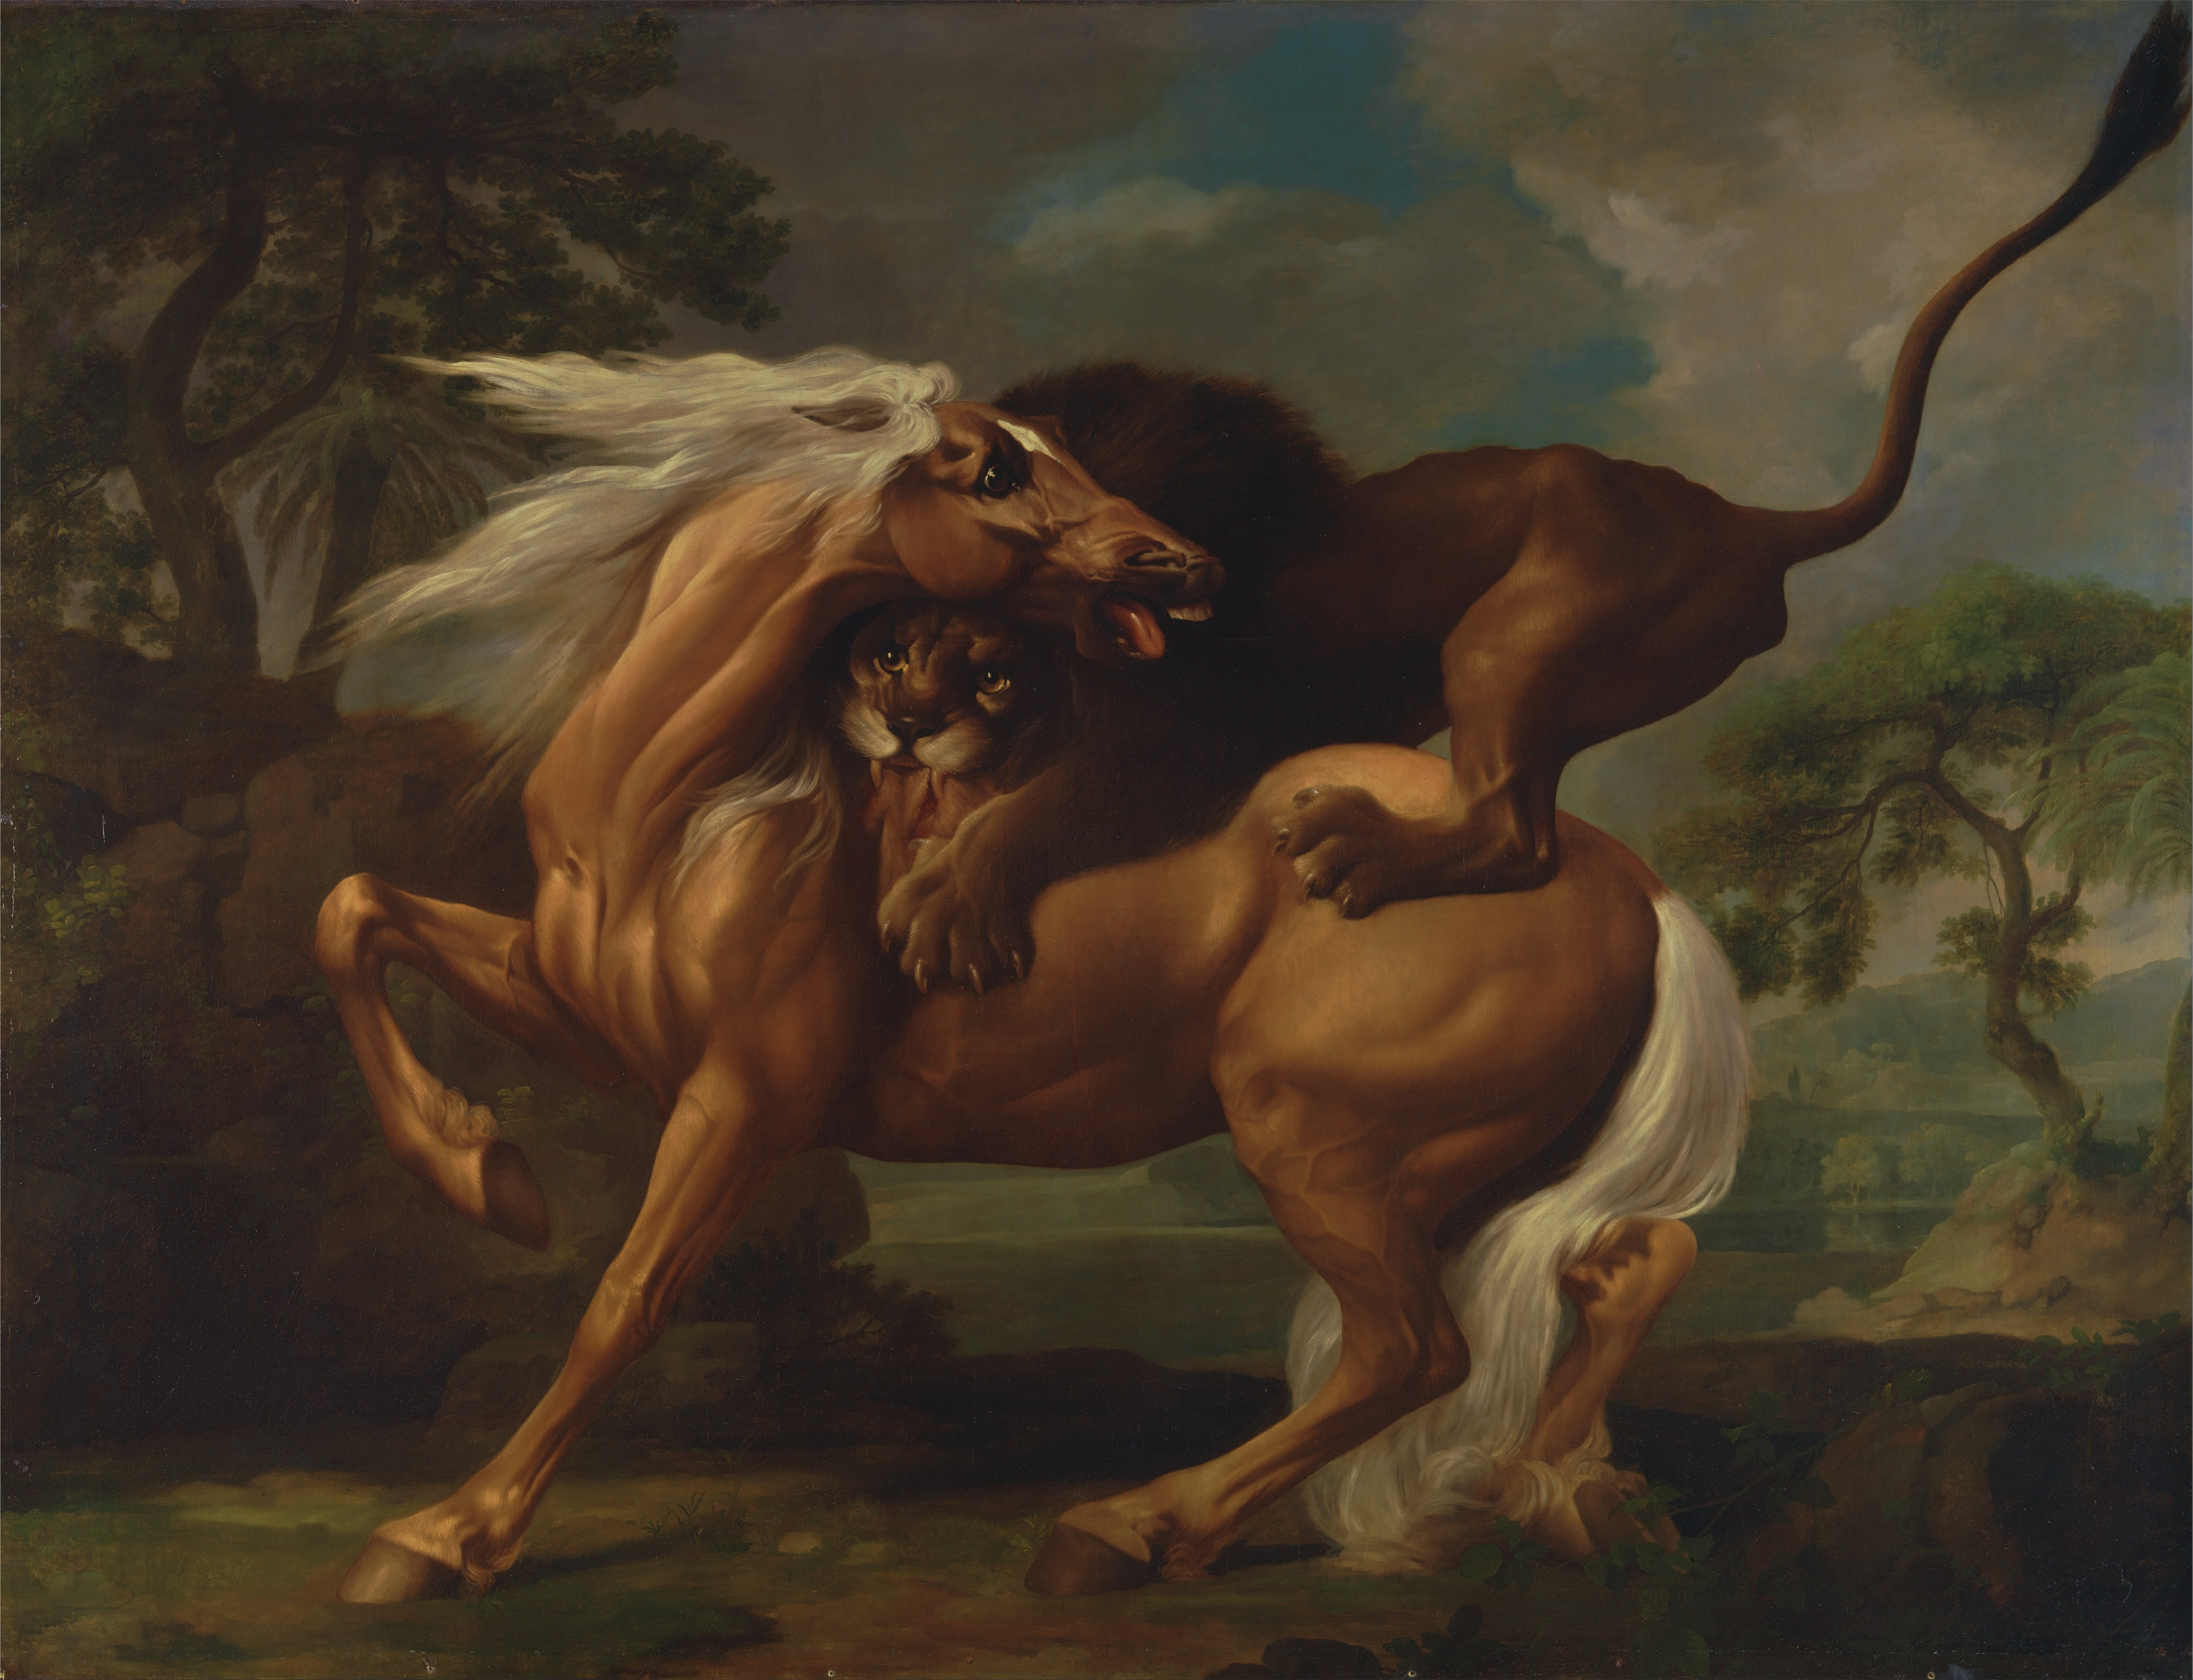 George_Stubbs_-_A_Lion_Attacking_a_Horse_-_Google_Art_Project